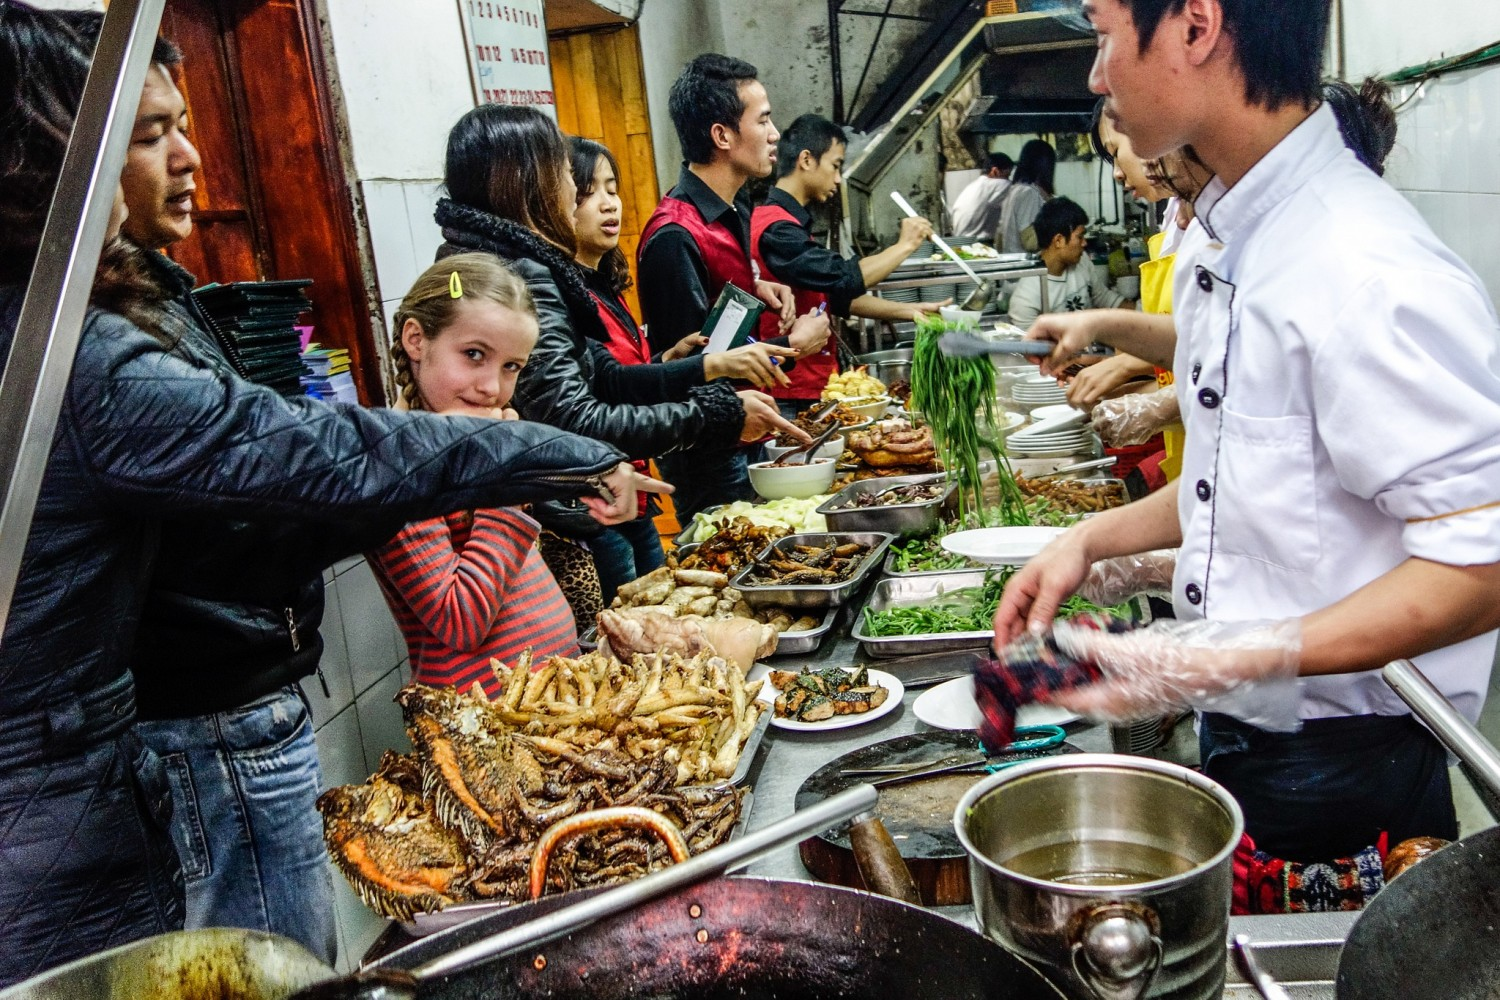 street food is one of the top draws in Hanoi. Here's why.